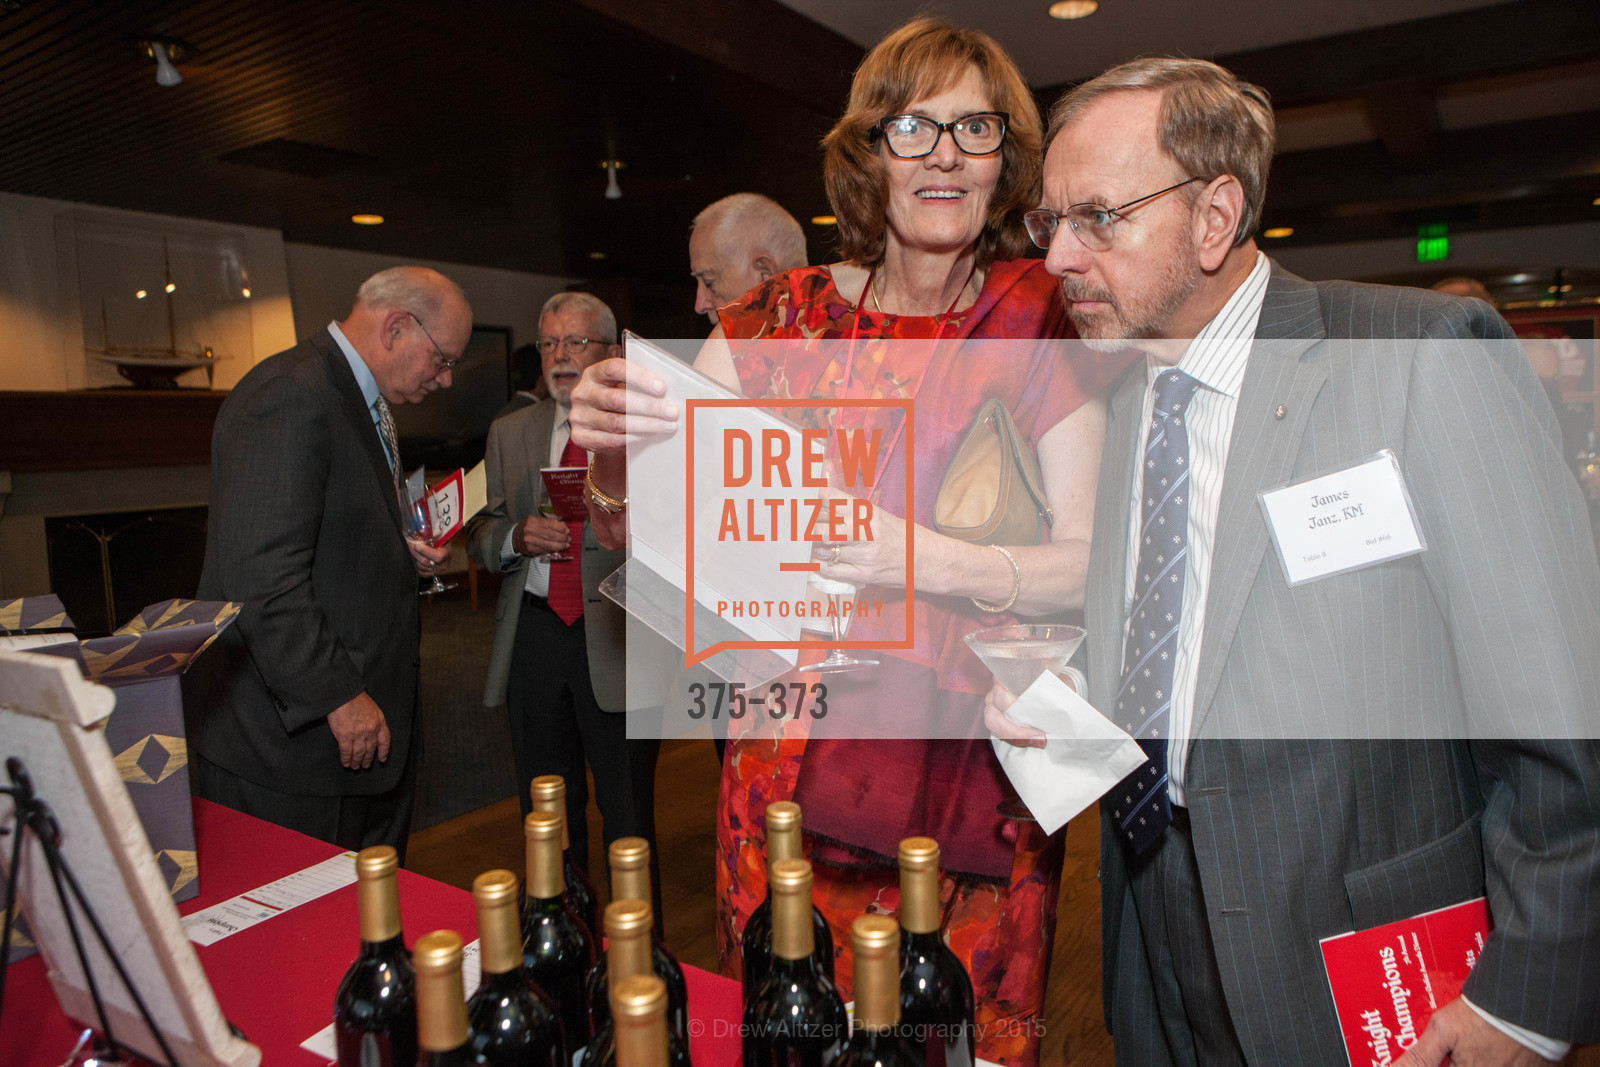 James Janz, Sovereign Order of Malta Presents: A Knight for Champions, 7th Annual Silver Chalice Awards Dinner, St. Francis Yacht Club. 99 Yacht Rd, October 13th, 2015,Drew Altizer, Drew Altizer Photography, full-service agency, private events, San Francisco photographer, photographer california